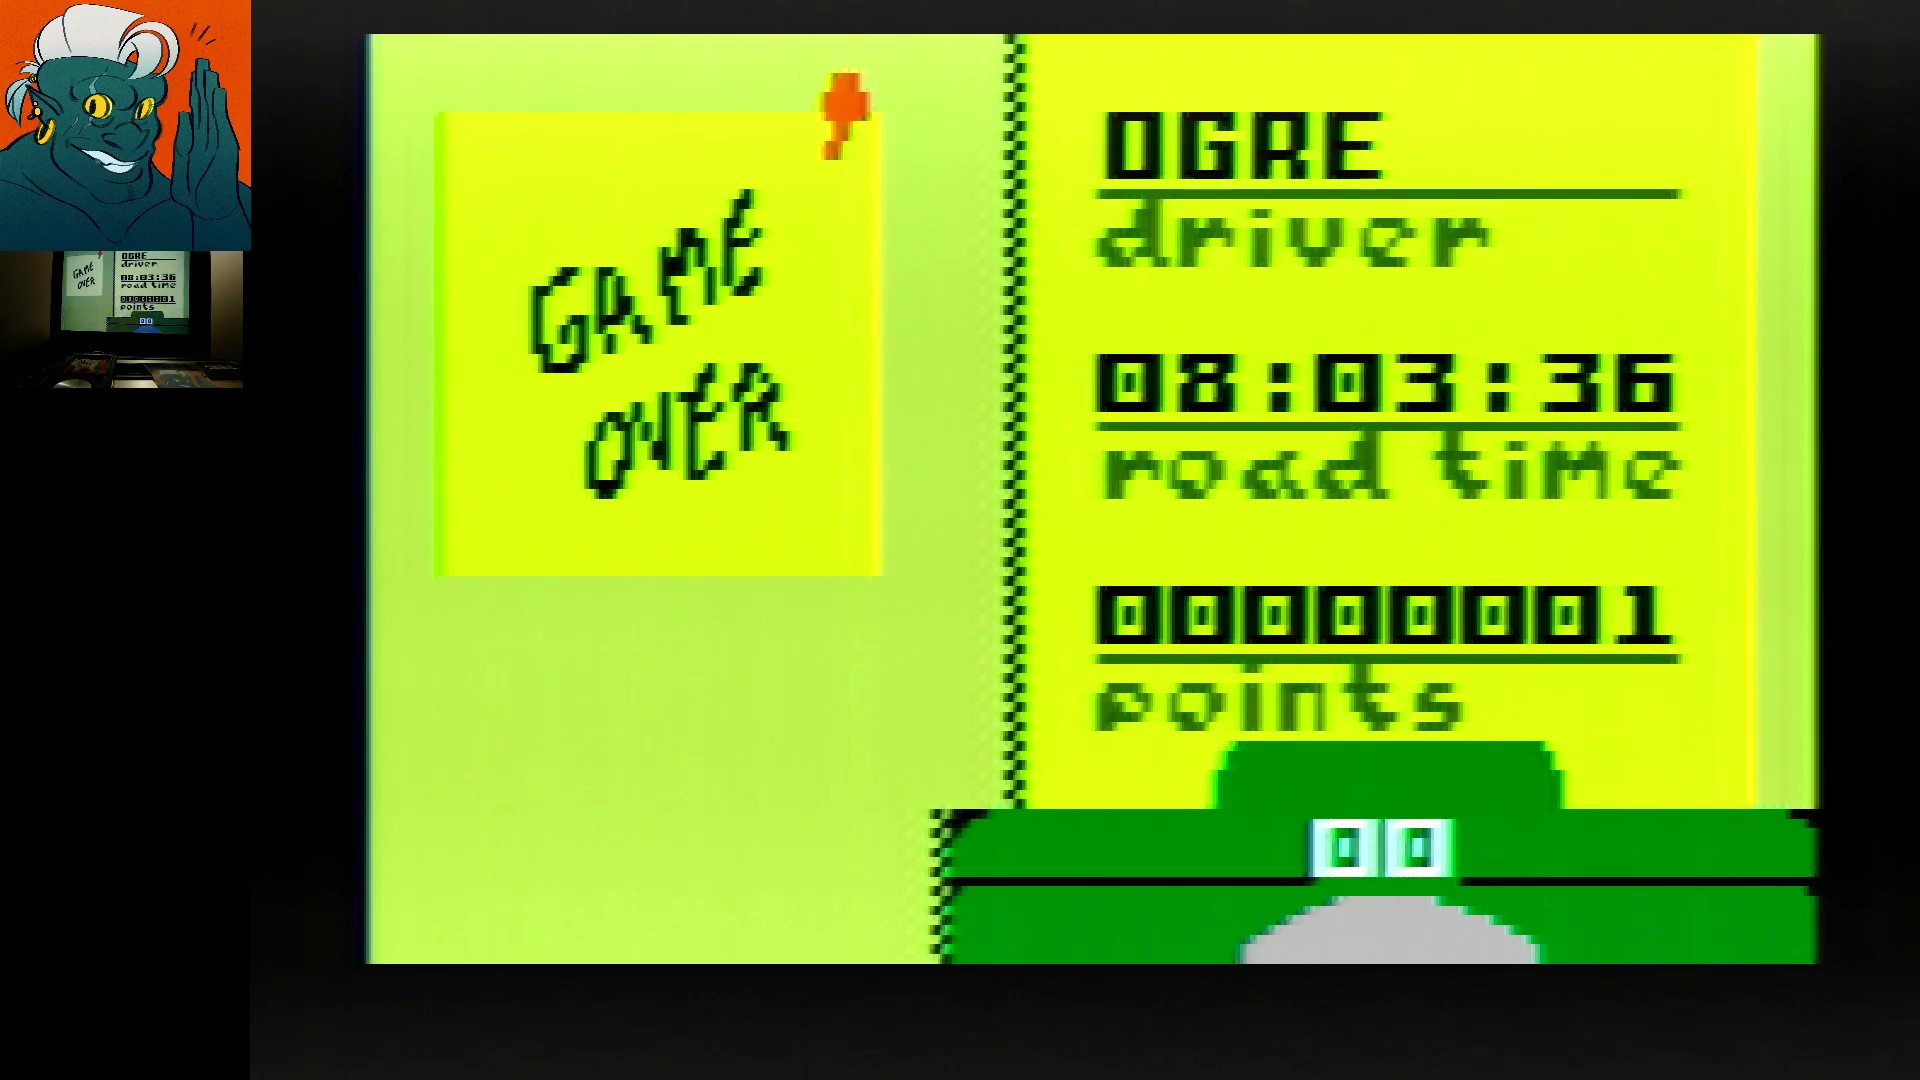 AwesomeOgre: Desert Bus (Intellivision) 1 points on 2019-11-30 17:13:36